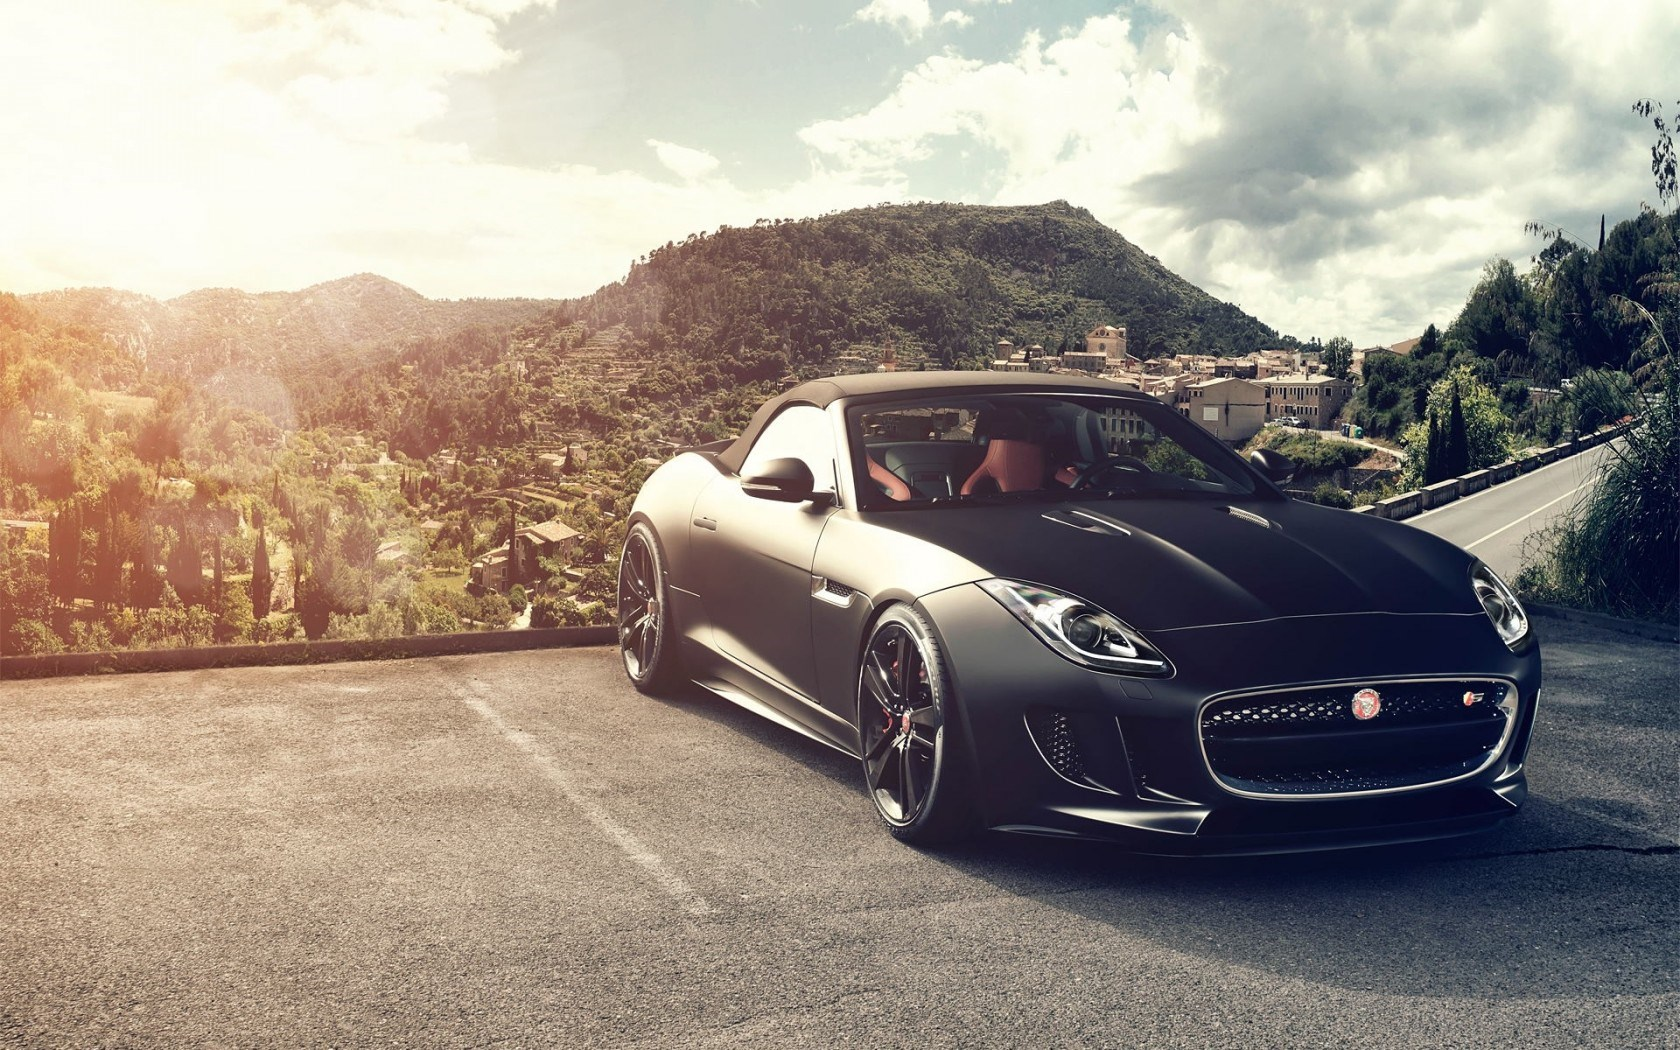 Jaguar F-Type R, an affordable exotic car.